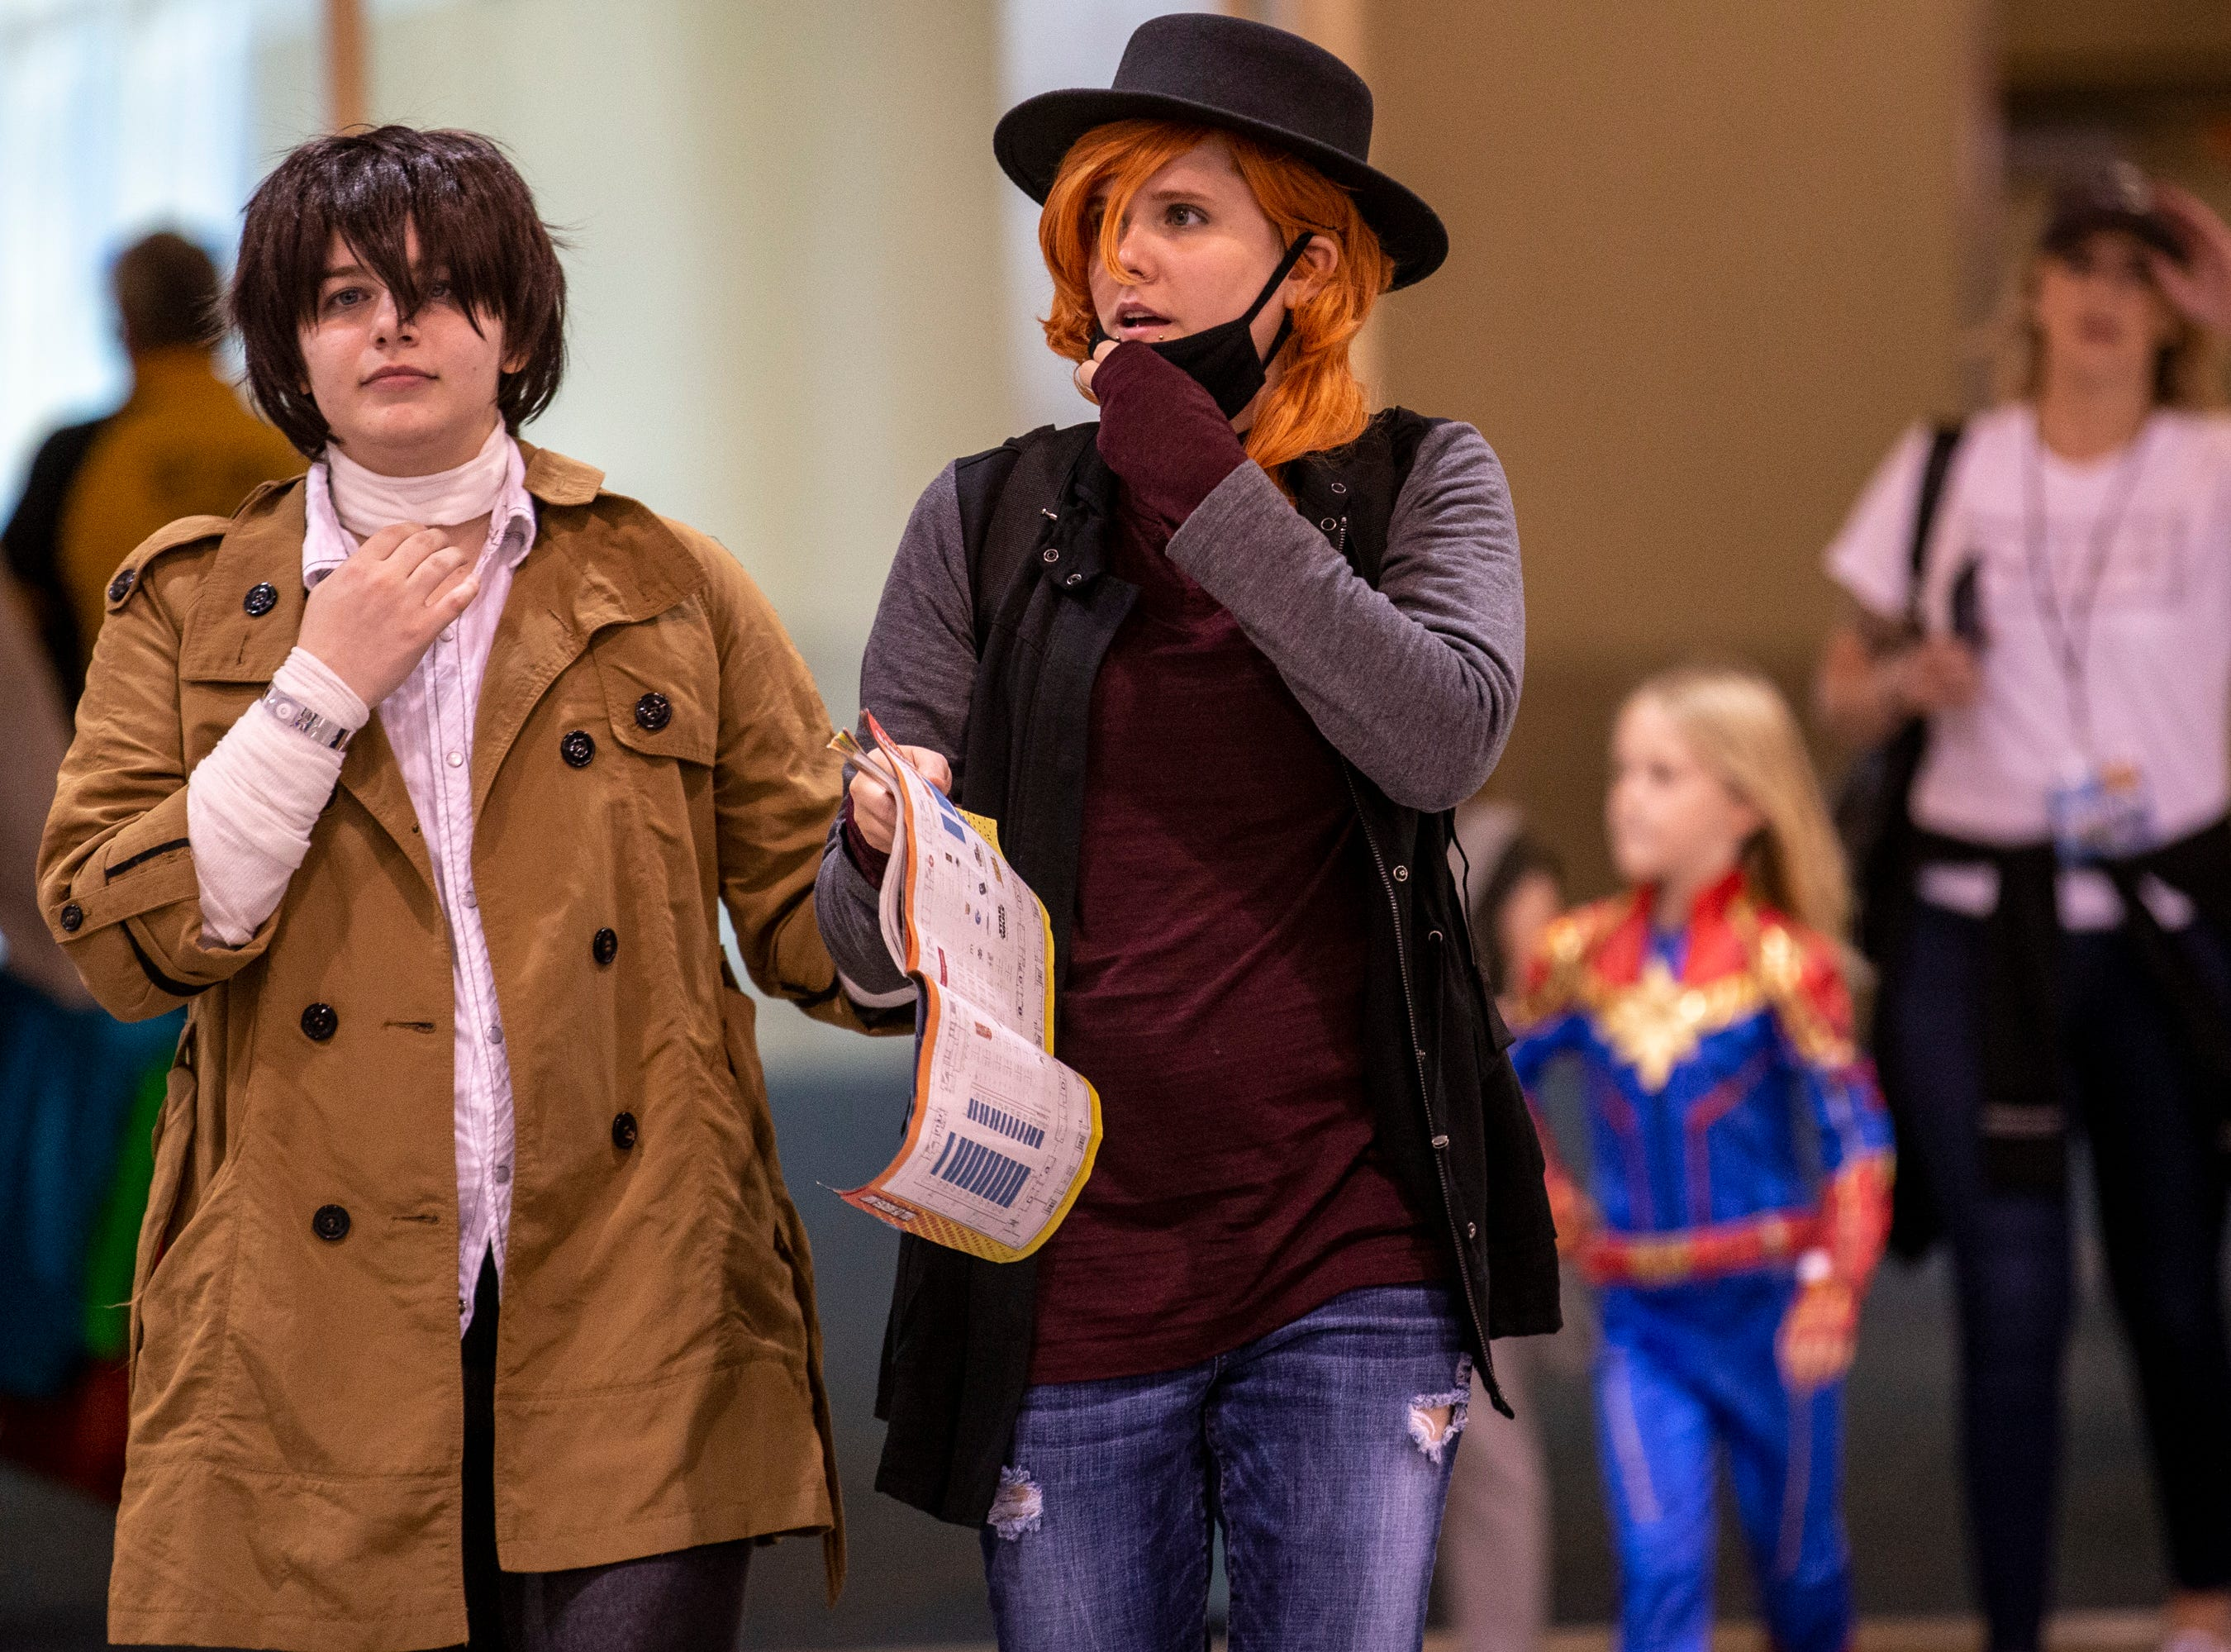 Ashley Mirablie (left) and Mary Farnsworth walk around during Day 1 of Phoenix Fan Fusion on May 23, 2019, at the Phoenix Convention Center.